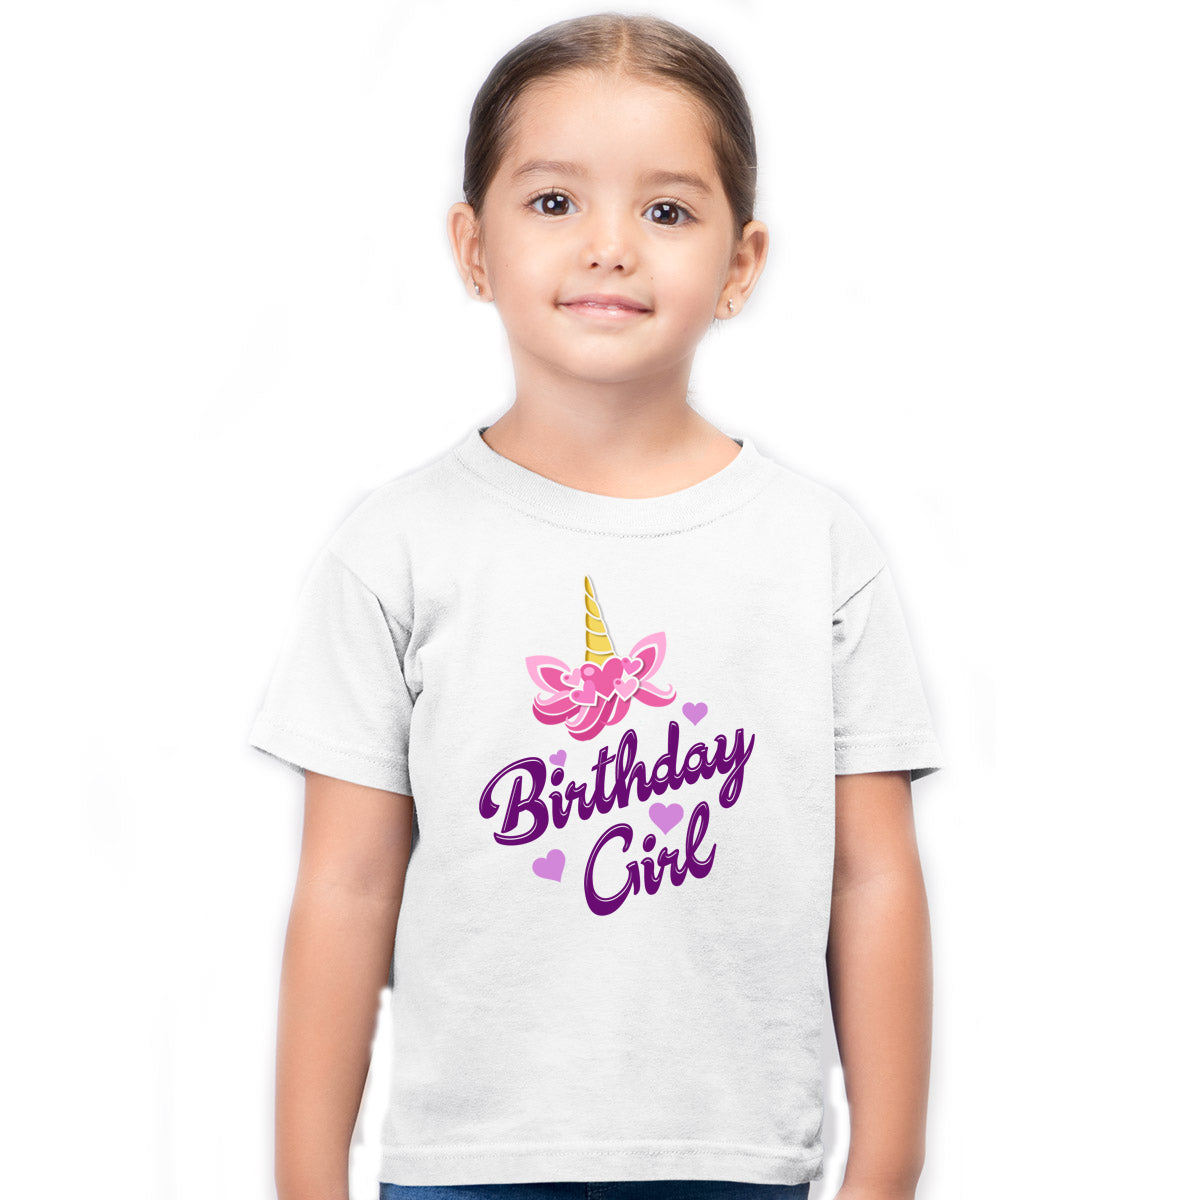 Sprinklecart Birthday Girl Printed Cute Unicorn Poly-Cotton Kids T Shirt (White)